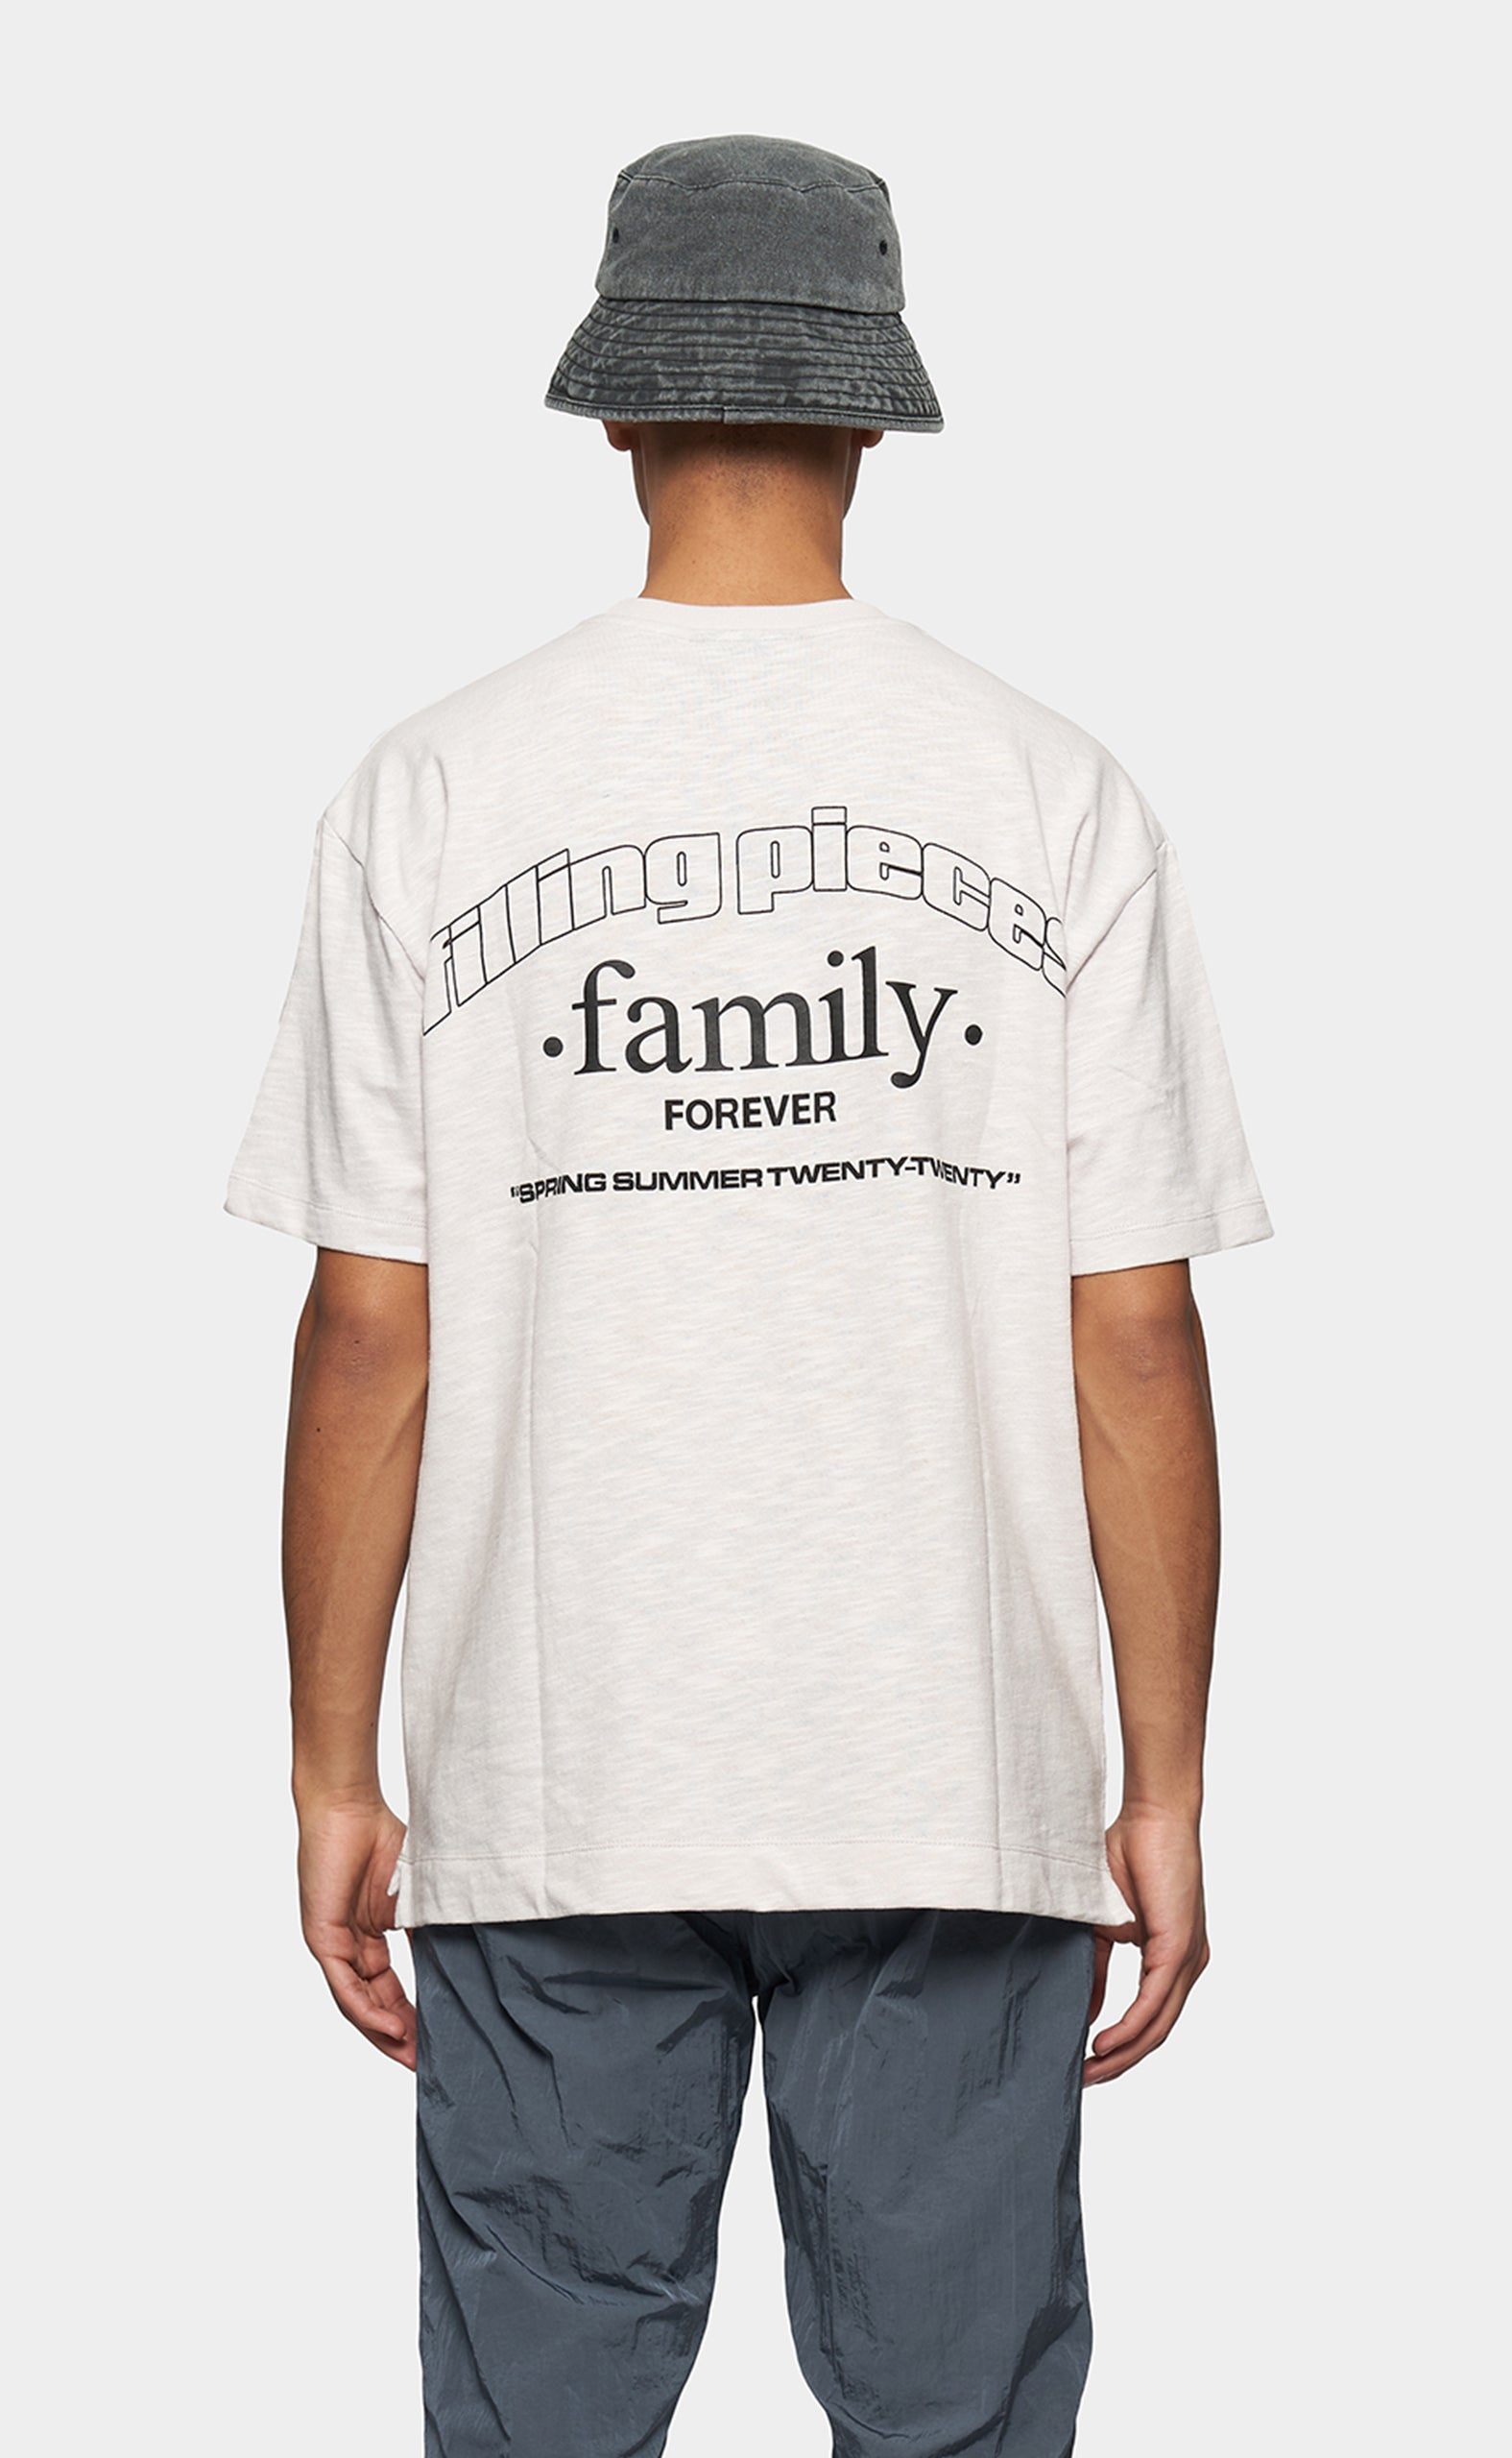 Graphic Tee FP Family Whitecap Grey - men